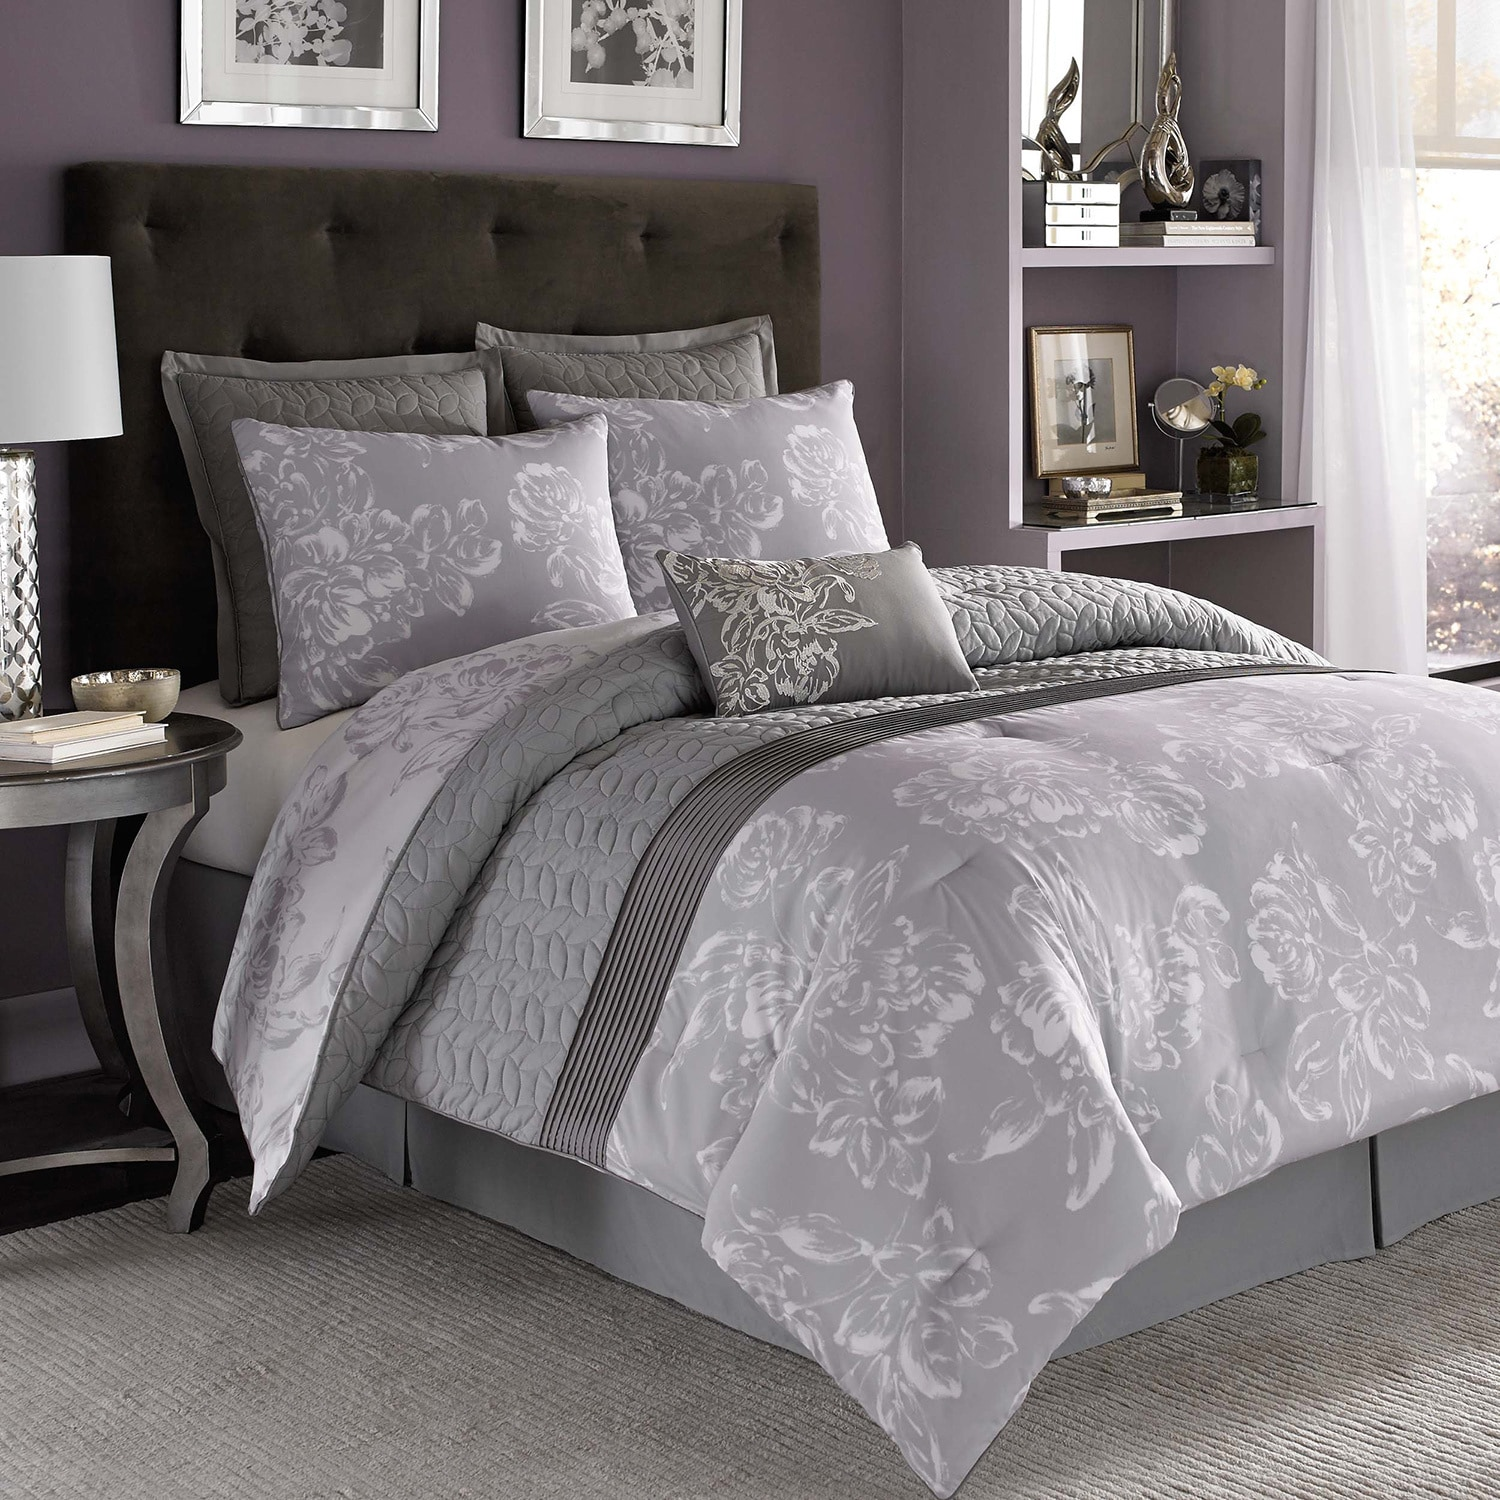 Nicole Miller Fl 7 Piece Comforter Set Free Shipping Today 9089541